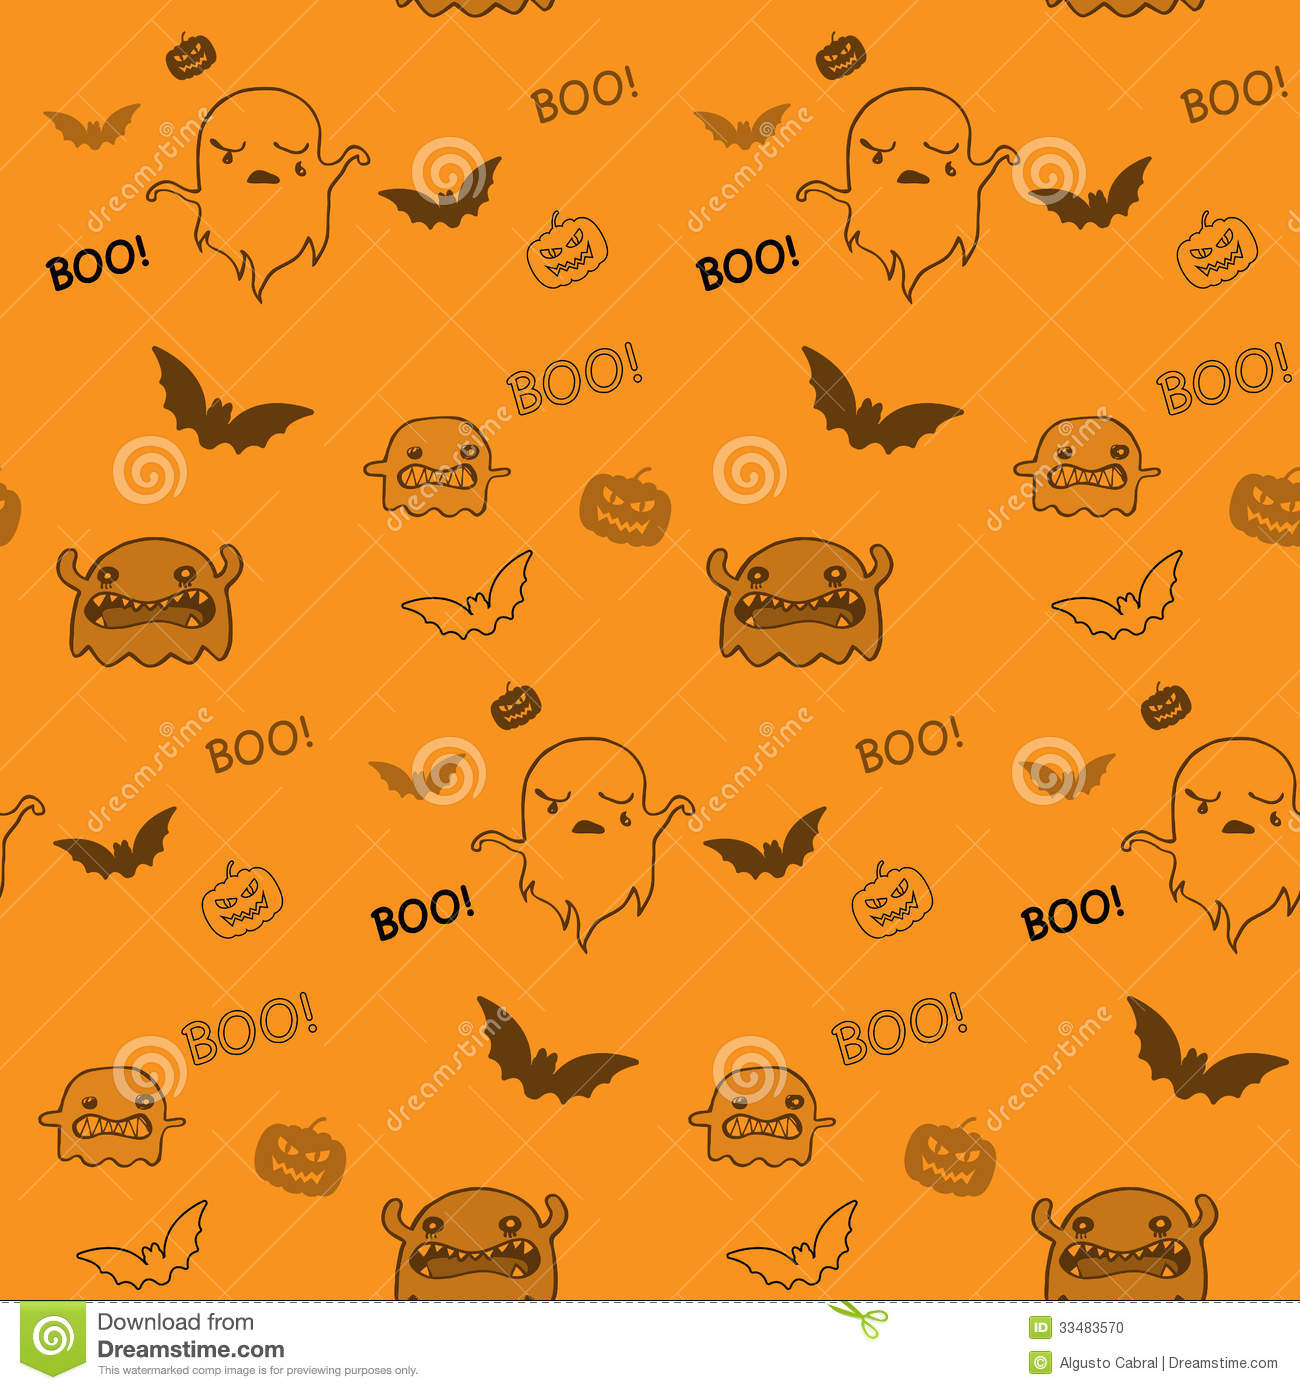 Halloween Ghost Bat Pumpkin Seamless Pattern Backg Stock Vector ... for Background Pattern Tumblr Orange  111ane